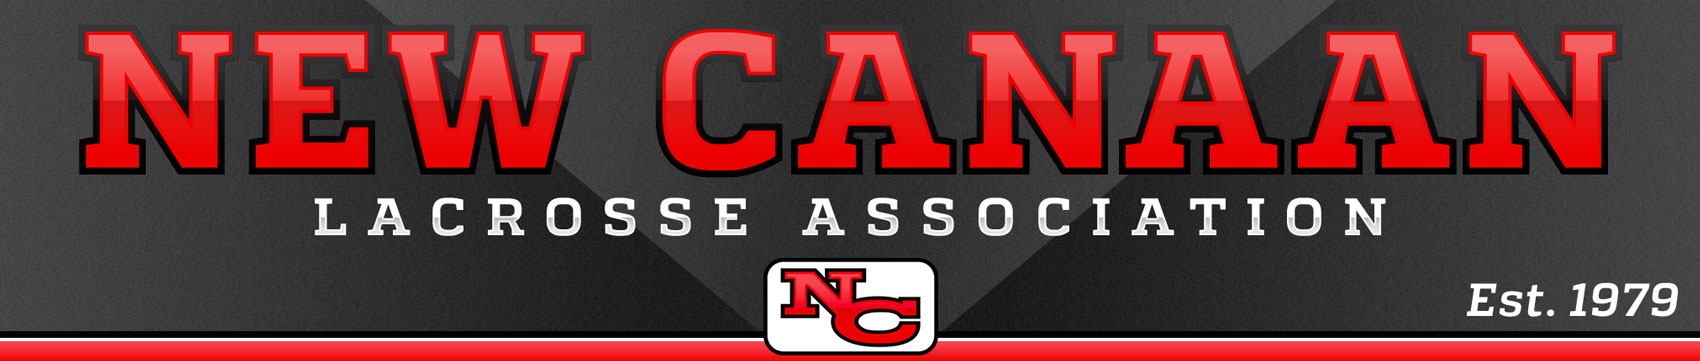 New Canaan Lacrosse AssociationP O Box 1671New Canaan Ct  06840Tax ID 061592201NonProfit 501c3 Organization, Lacrosse, Goal, Field